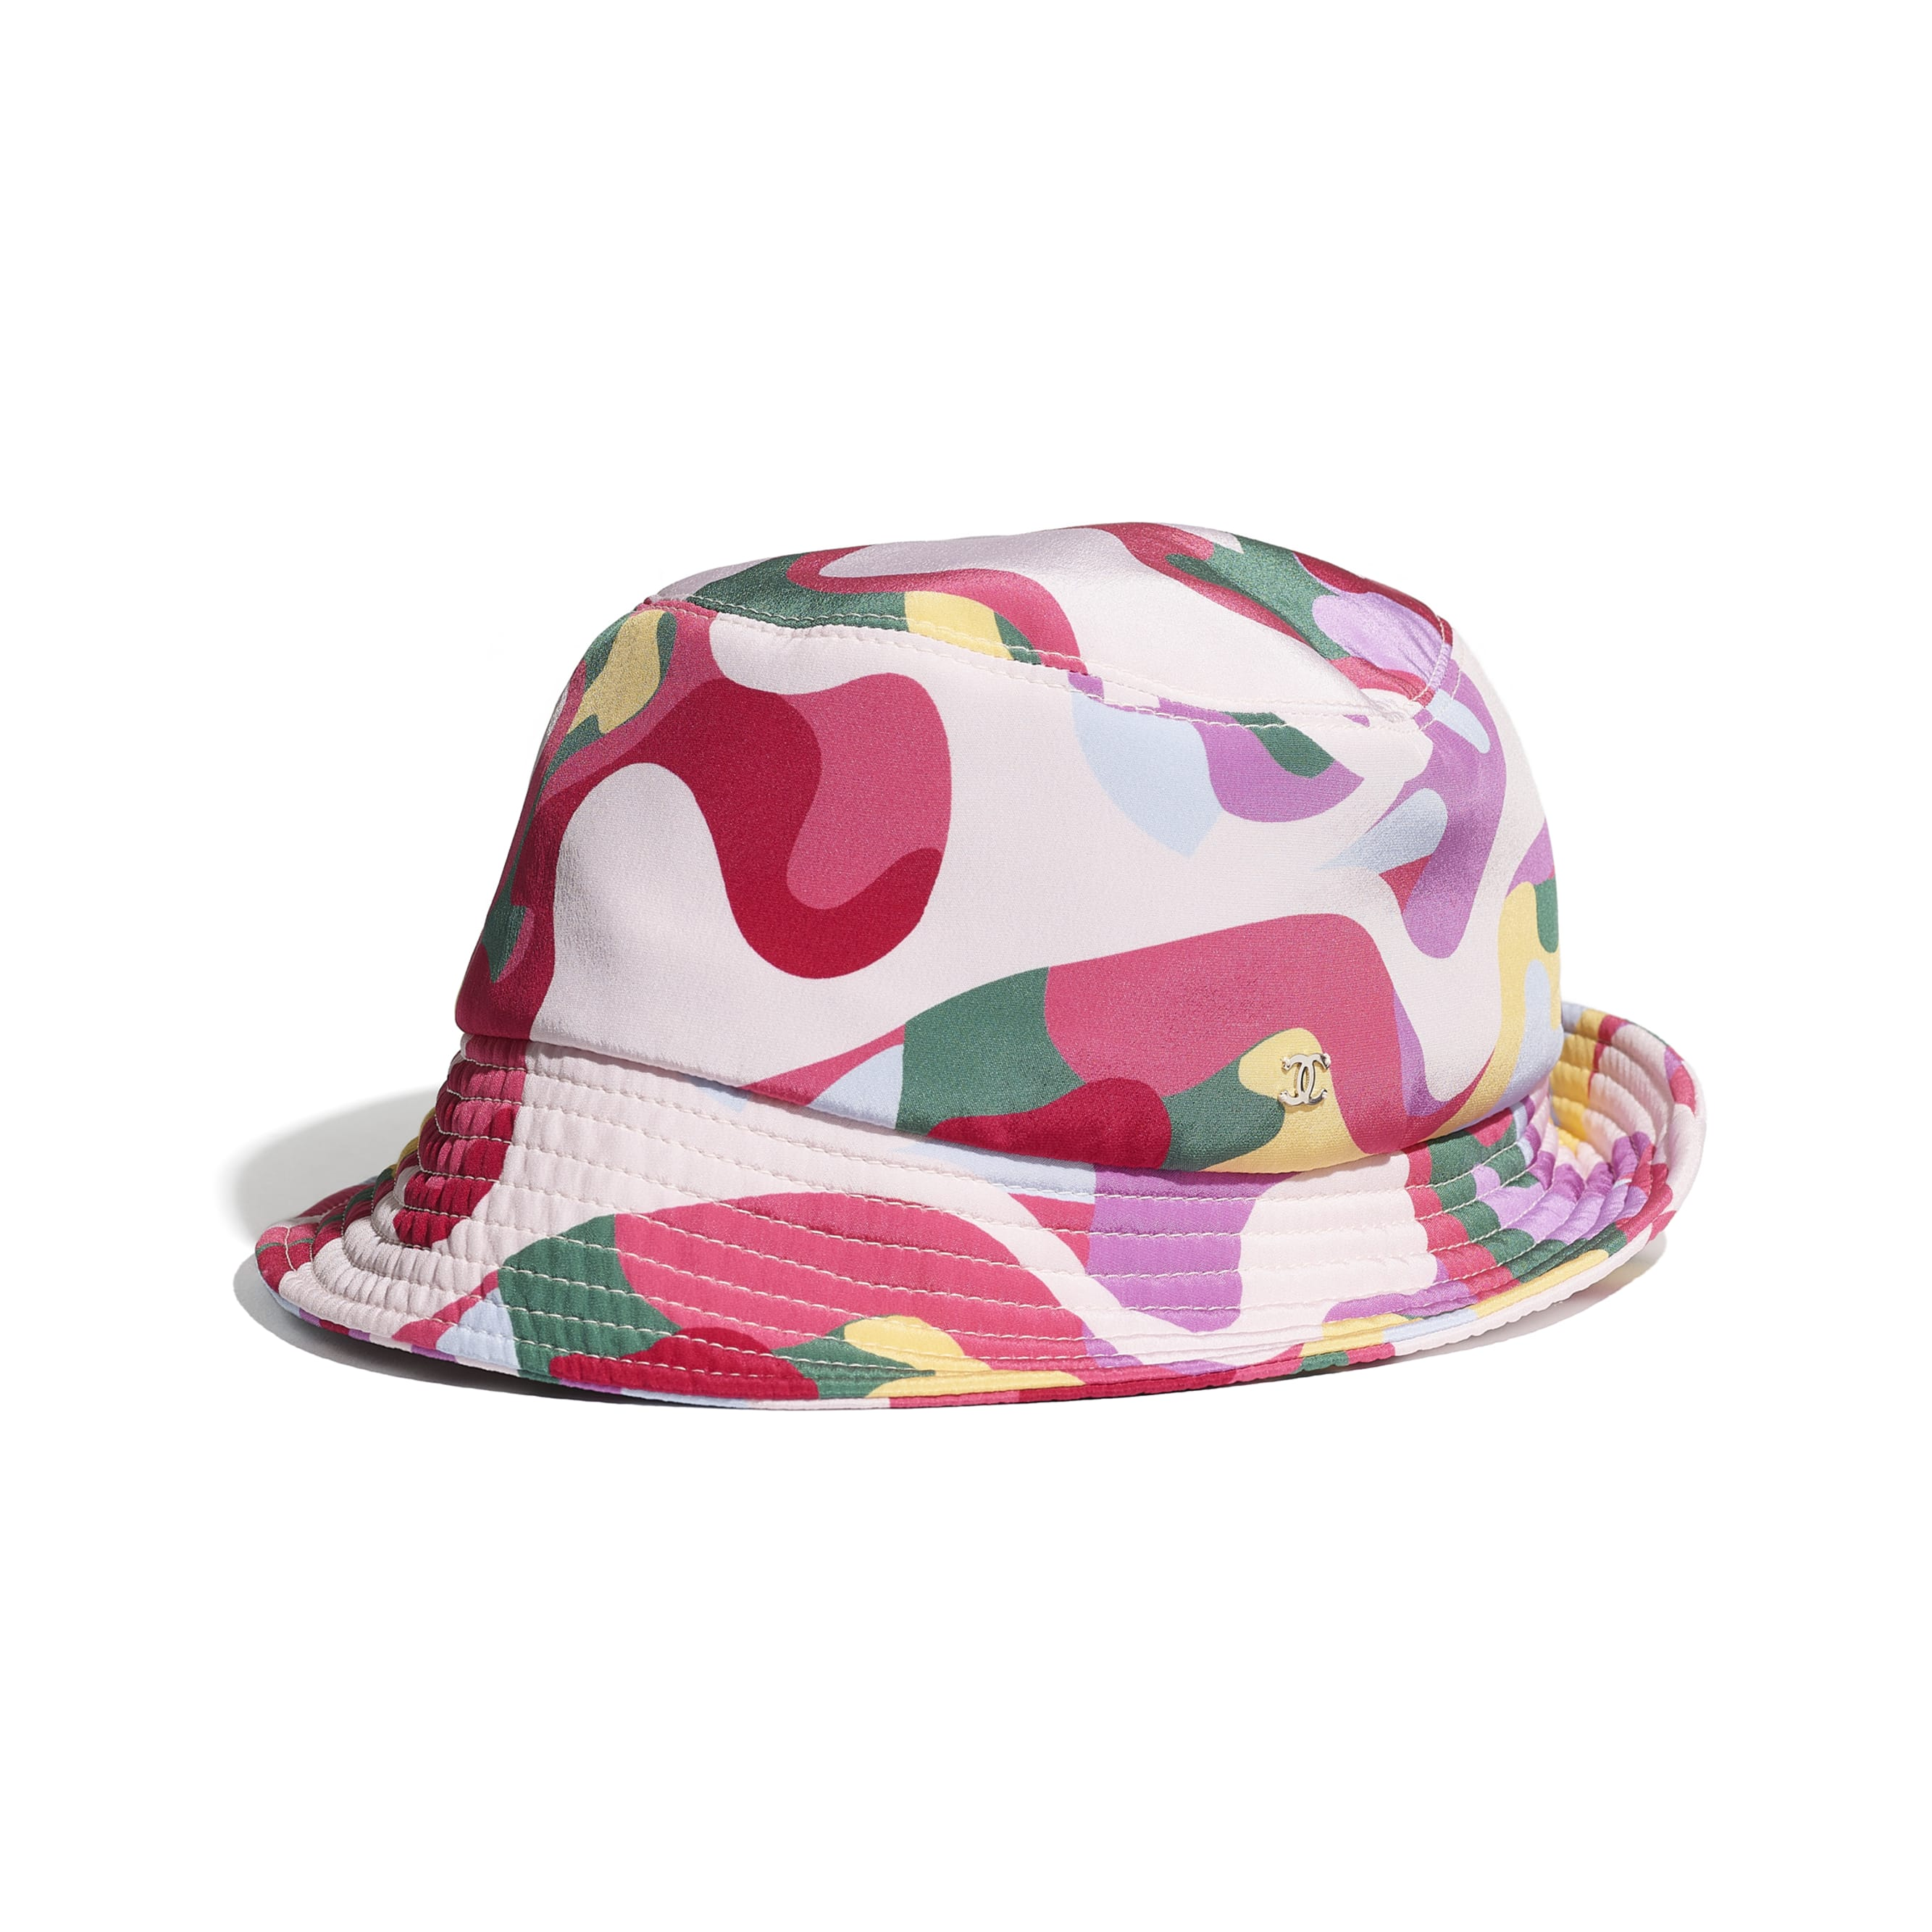 Hat - Pink, Green, Yellow & Purple - Cotton - CHANEL - Alternative view - see standard sized version